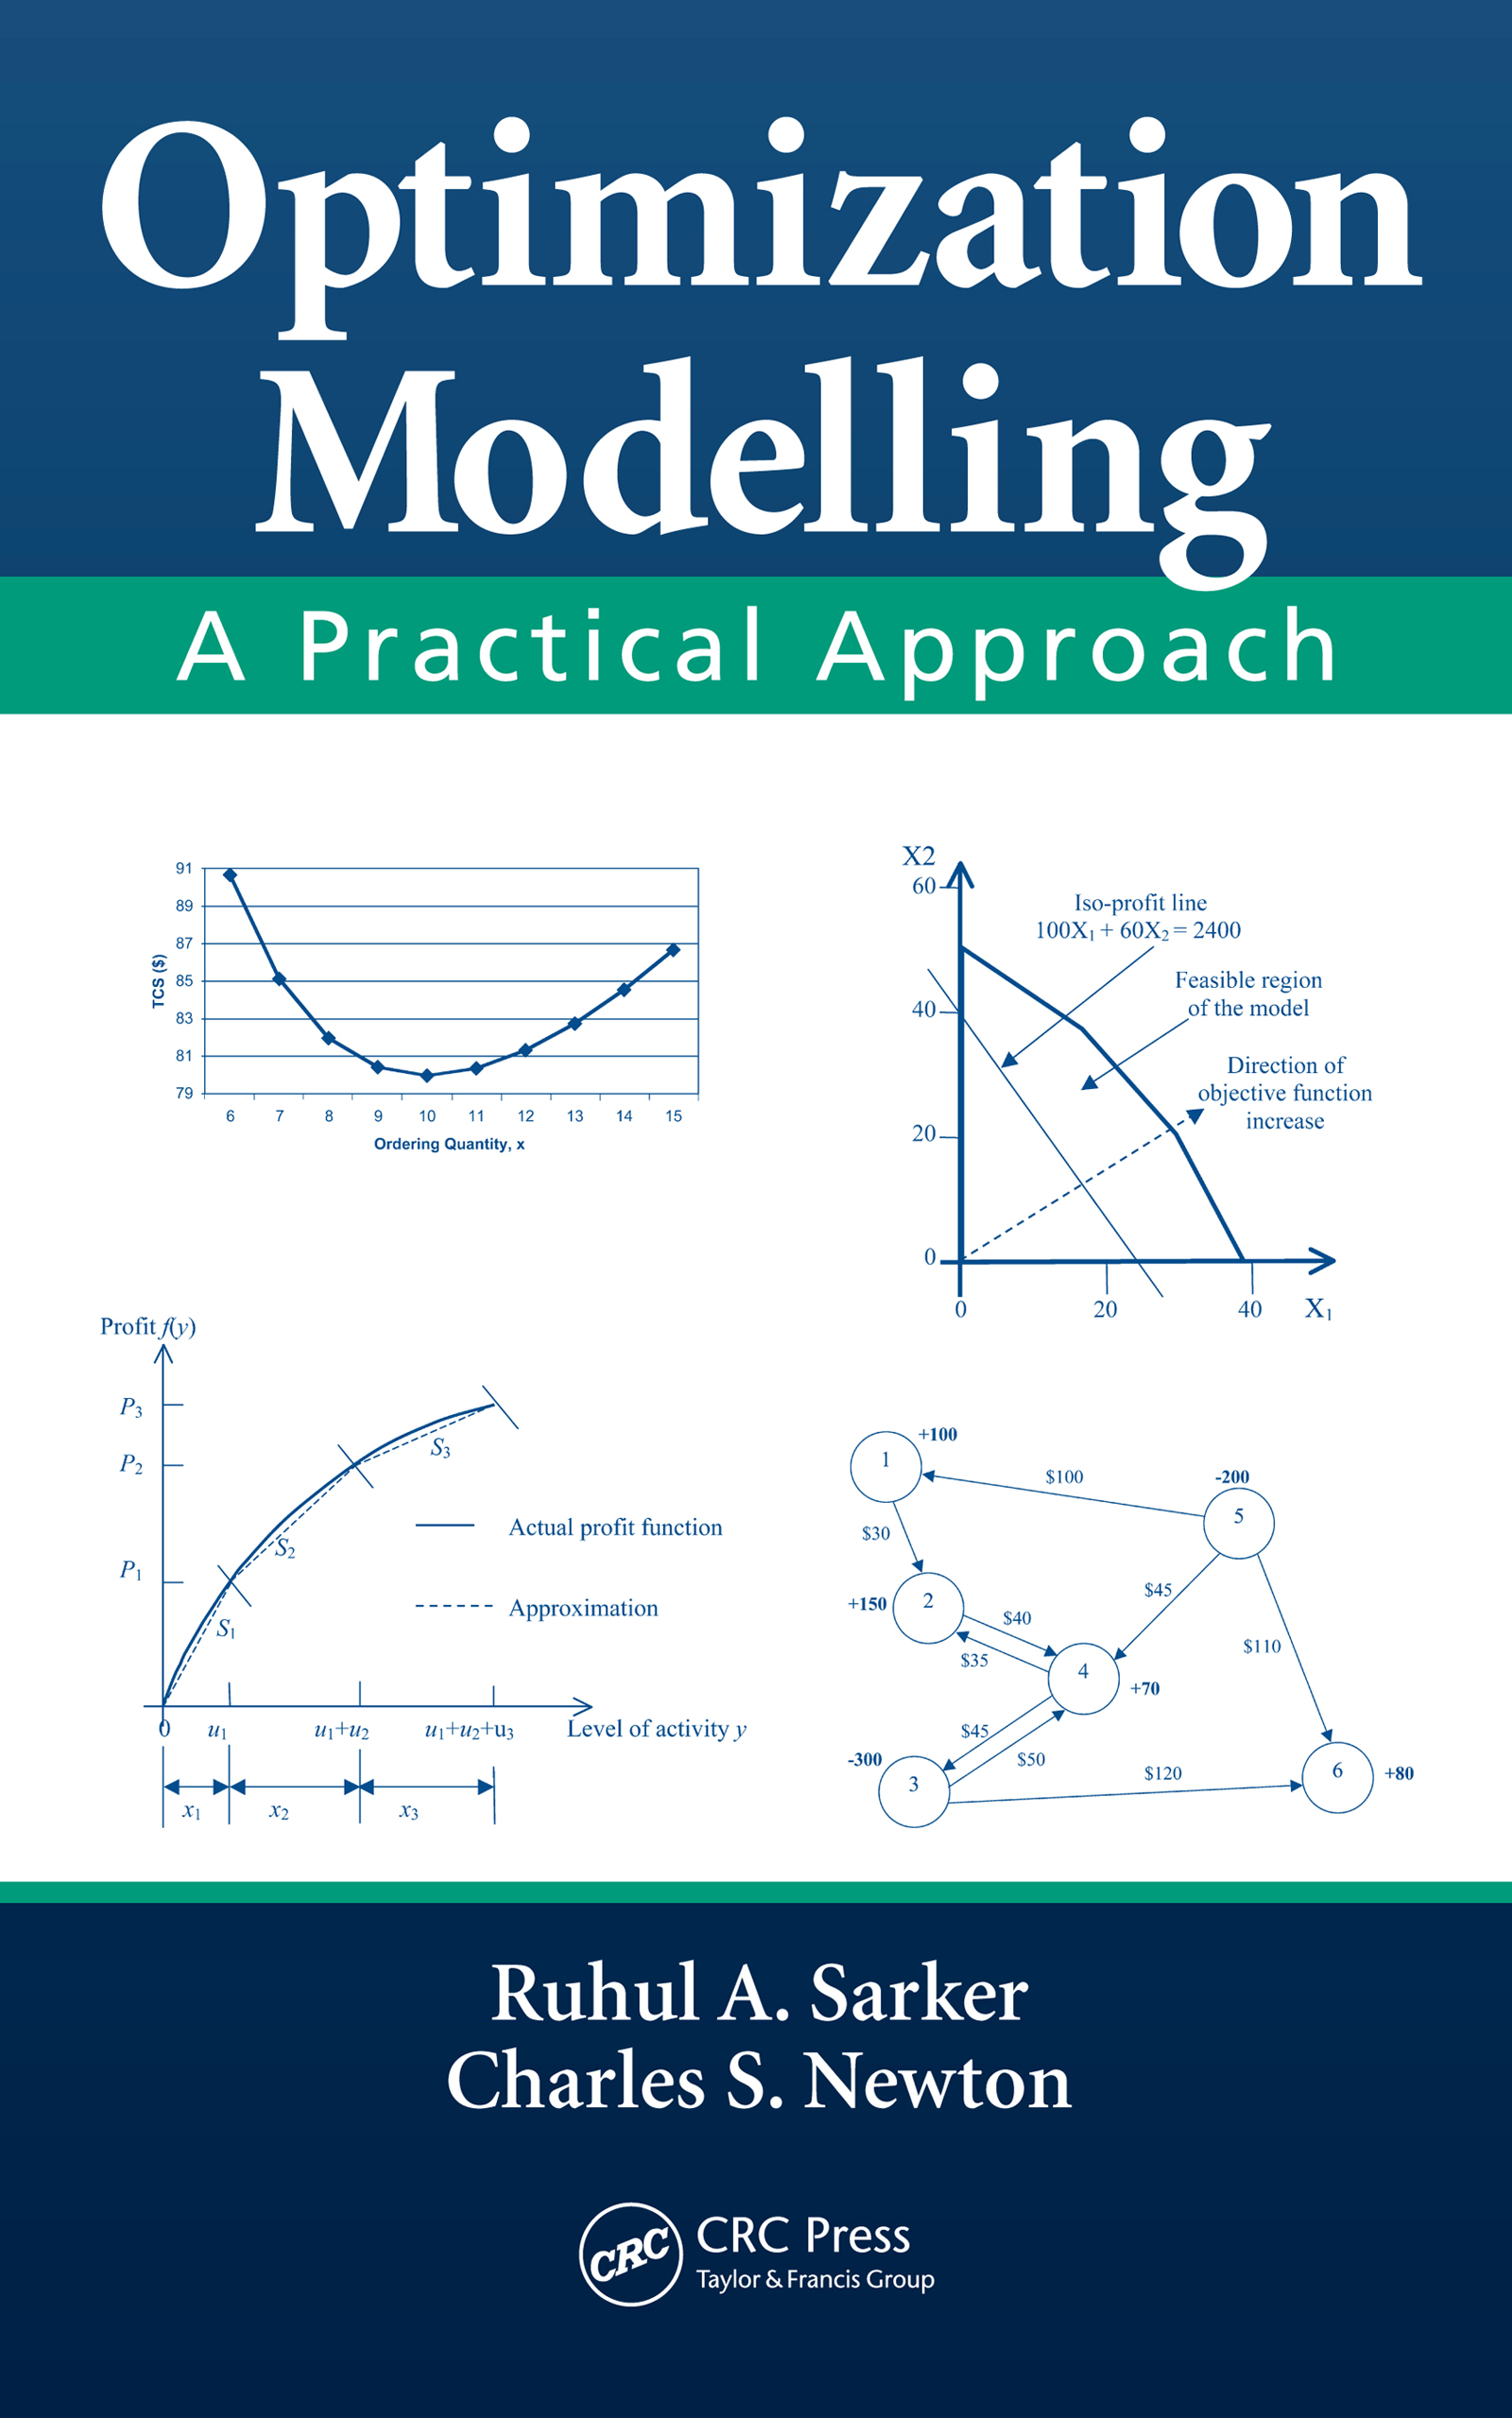 Download Ebook Optimization Modelling by Ruhul Amin Sarker Pdf